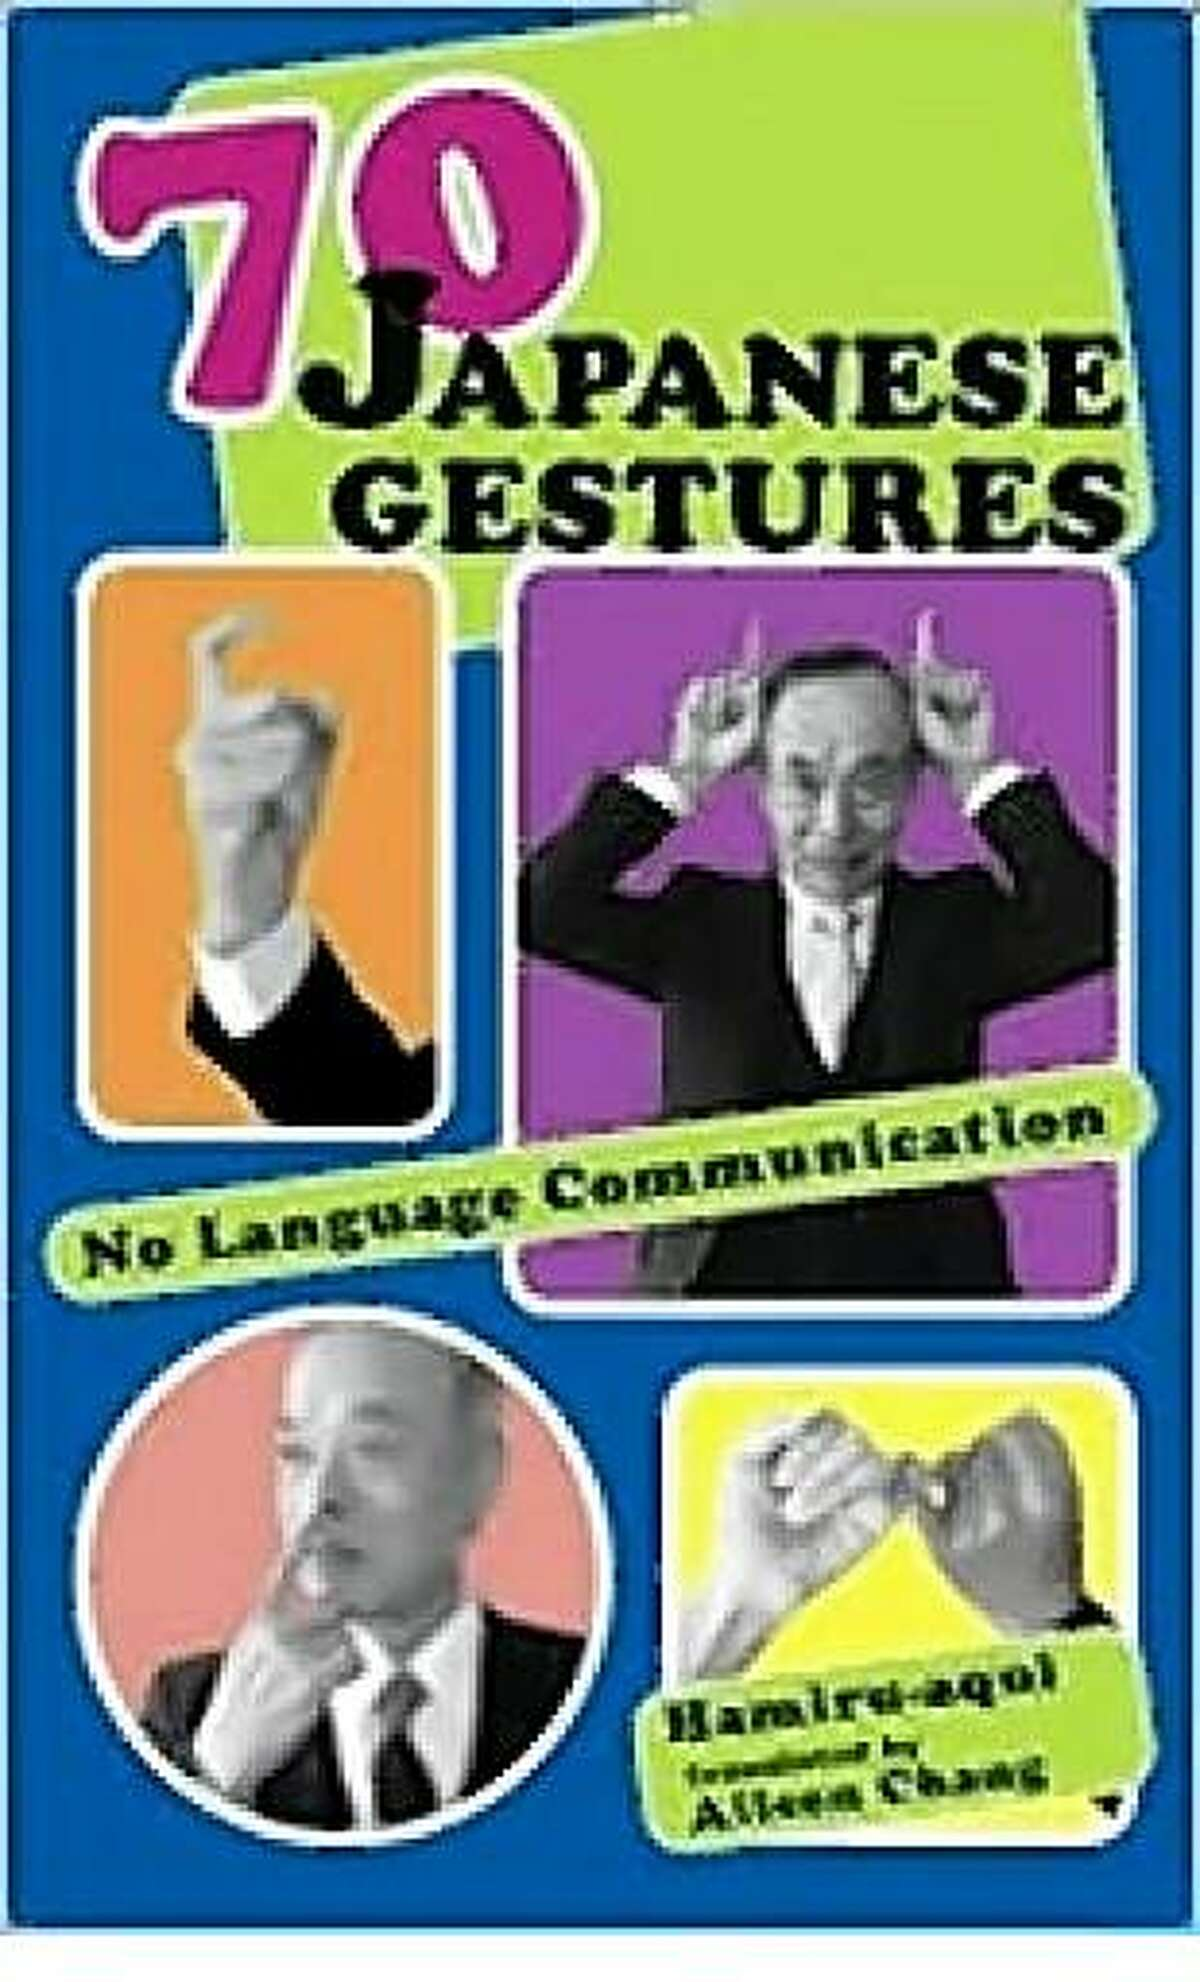 ?70 Japanese Gestures: No Language Commnication? by Hamiru-aqui and translated by Aileen Chang (Stone Bridge Press, 2008, $9.95)